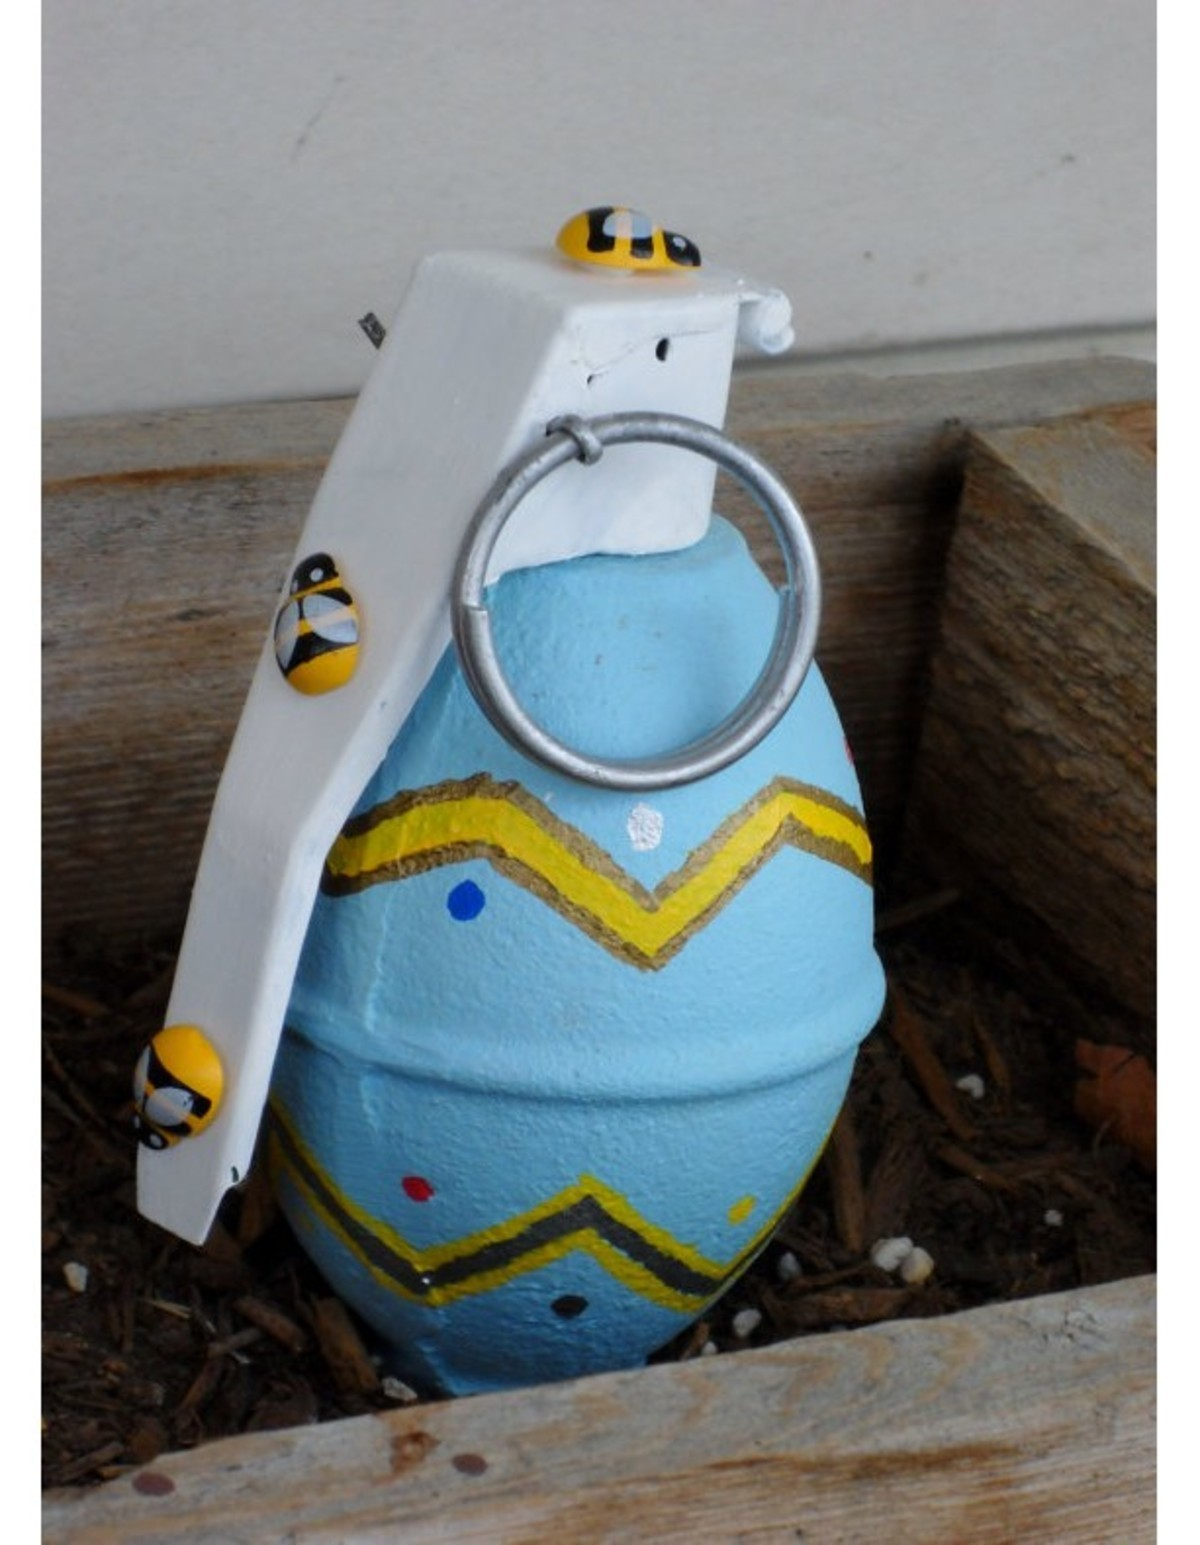 That's No Easter Egg, It's a LIVE Grenade Found At Fairground. I wish I was making this up but it is definitely confirmed. The funniest part is that this stupid